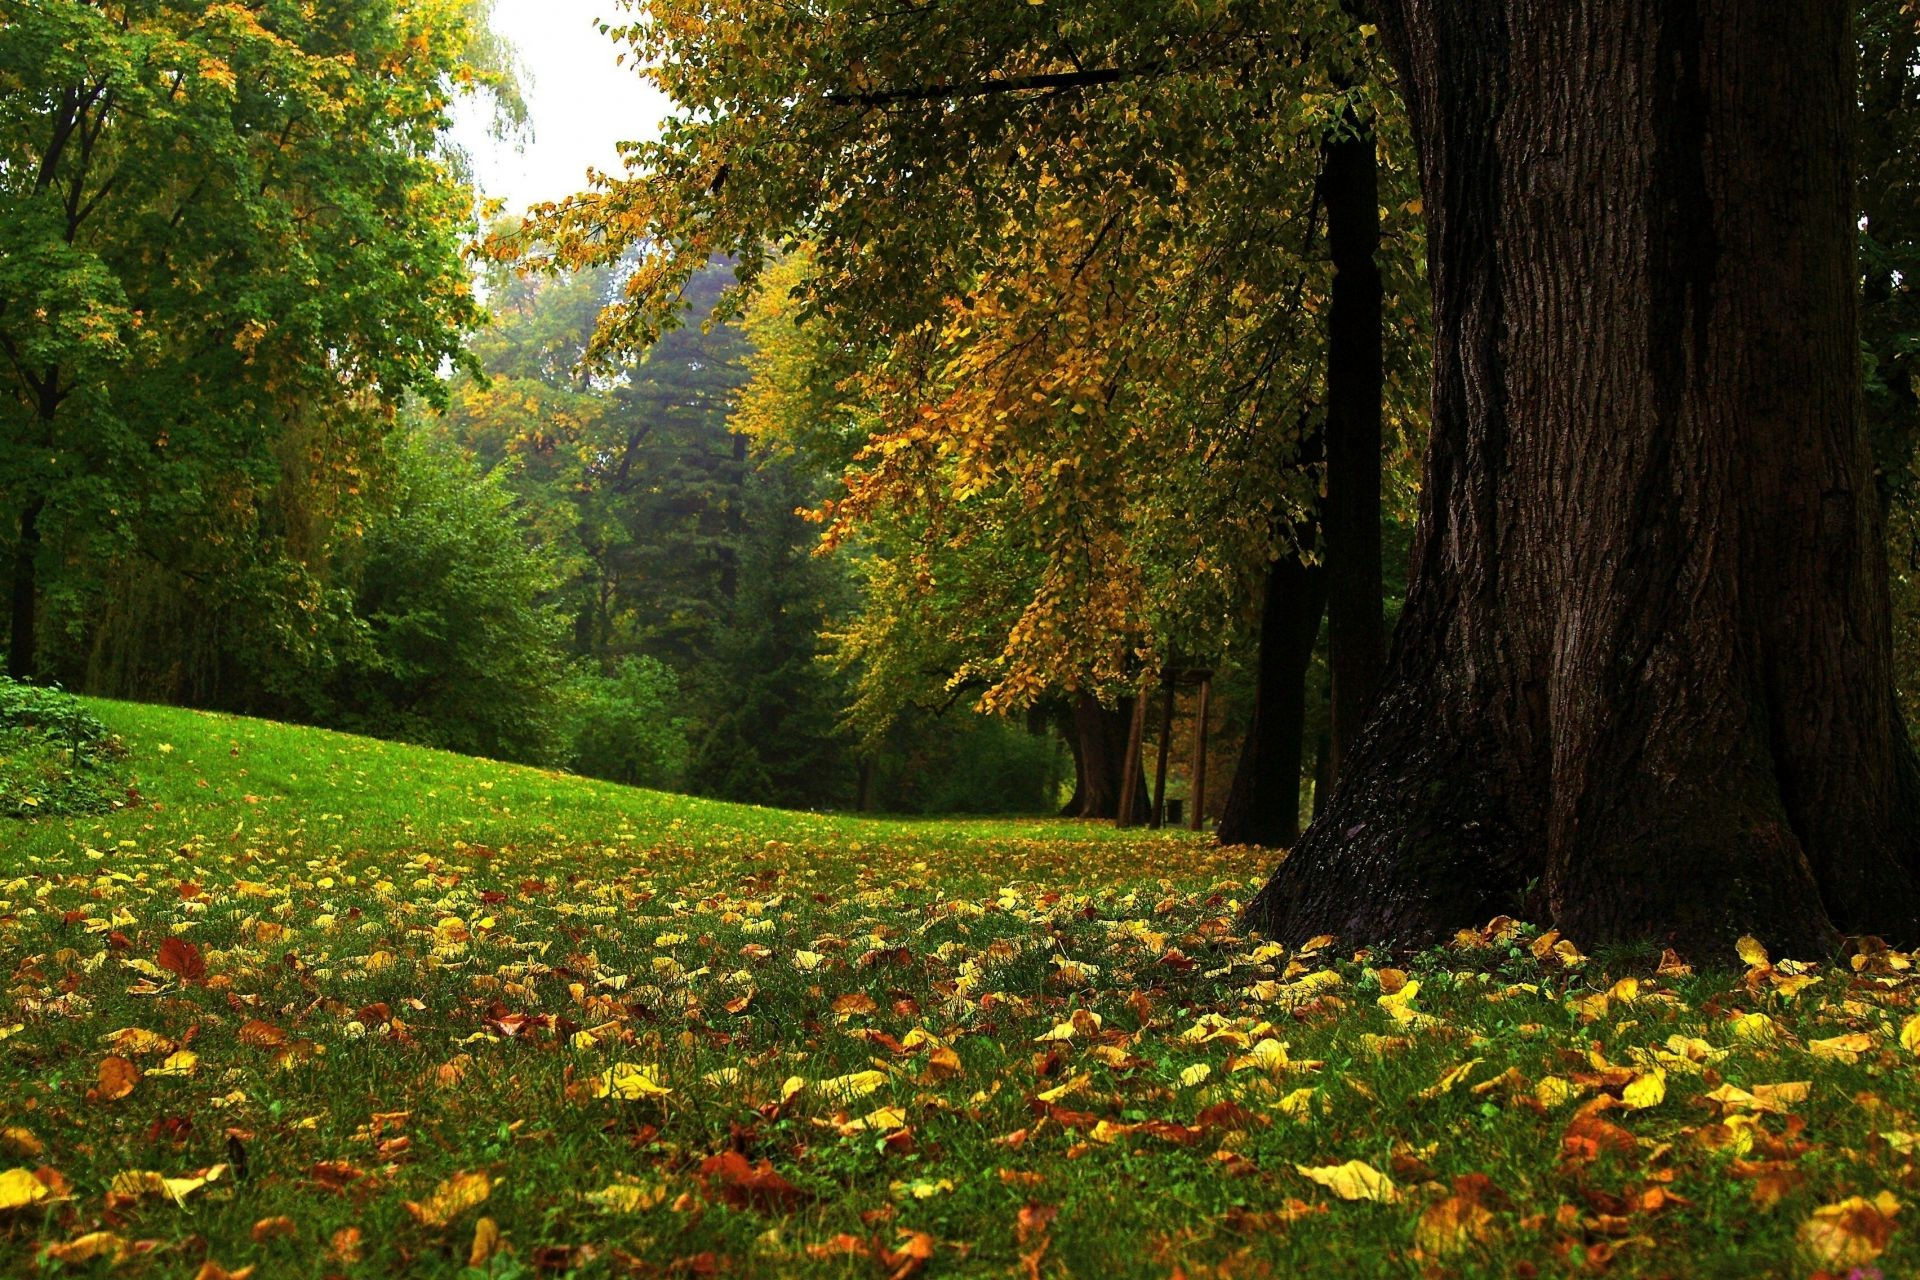 leaves tree wood leaf park landscape nature fall outdoors maple scenic environment fair weather